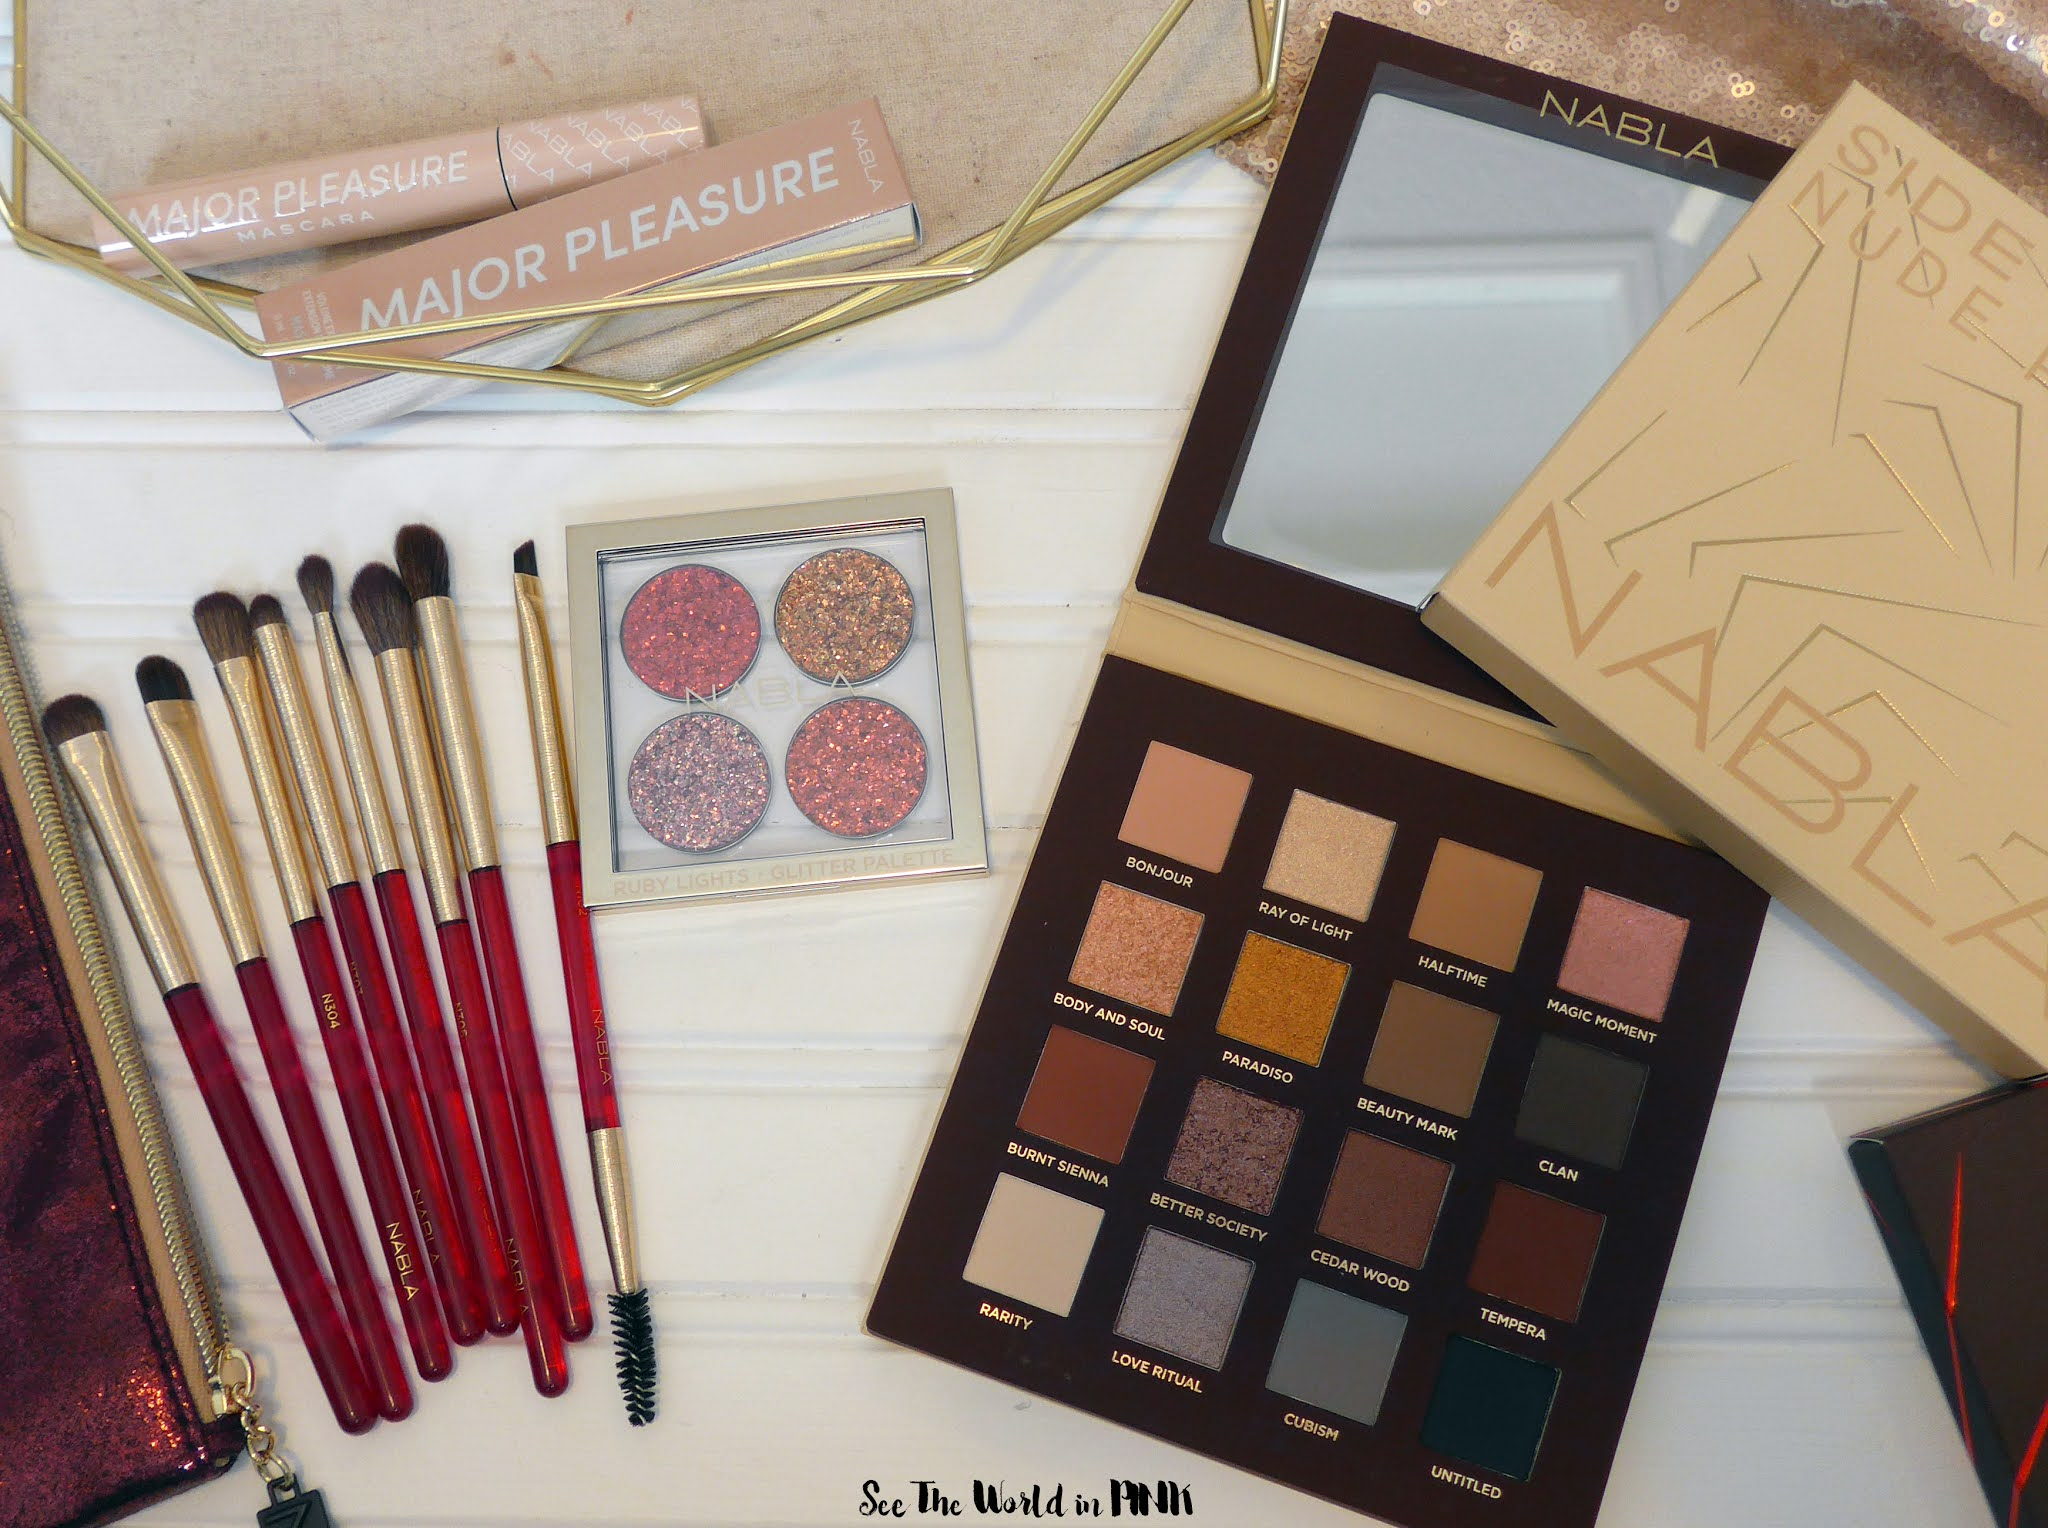 Nabla Side by Side Eyeshadow Palette, Ruby Lights Glitter Quad, Major Pleasure Mascara and Ruby Brush Set